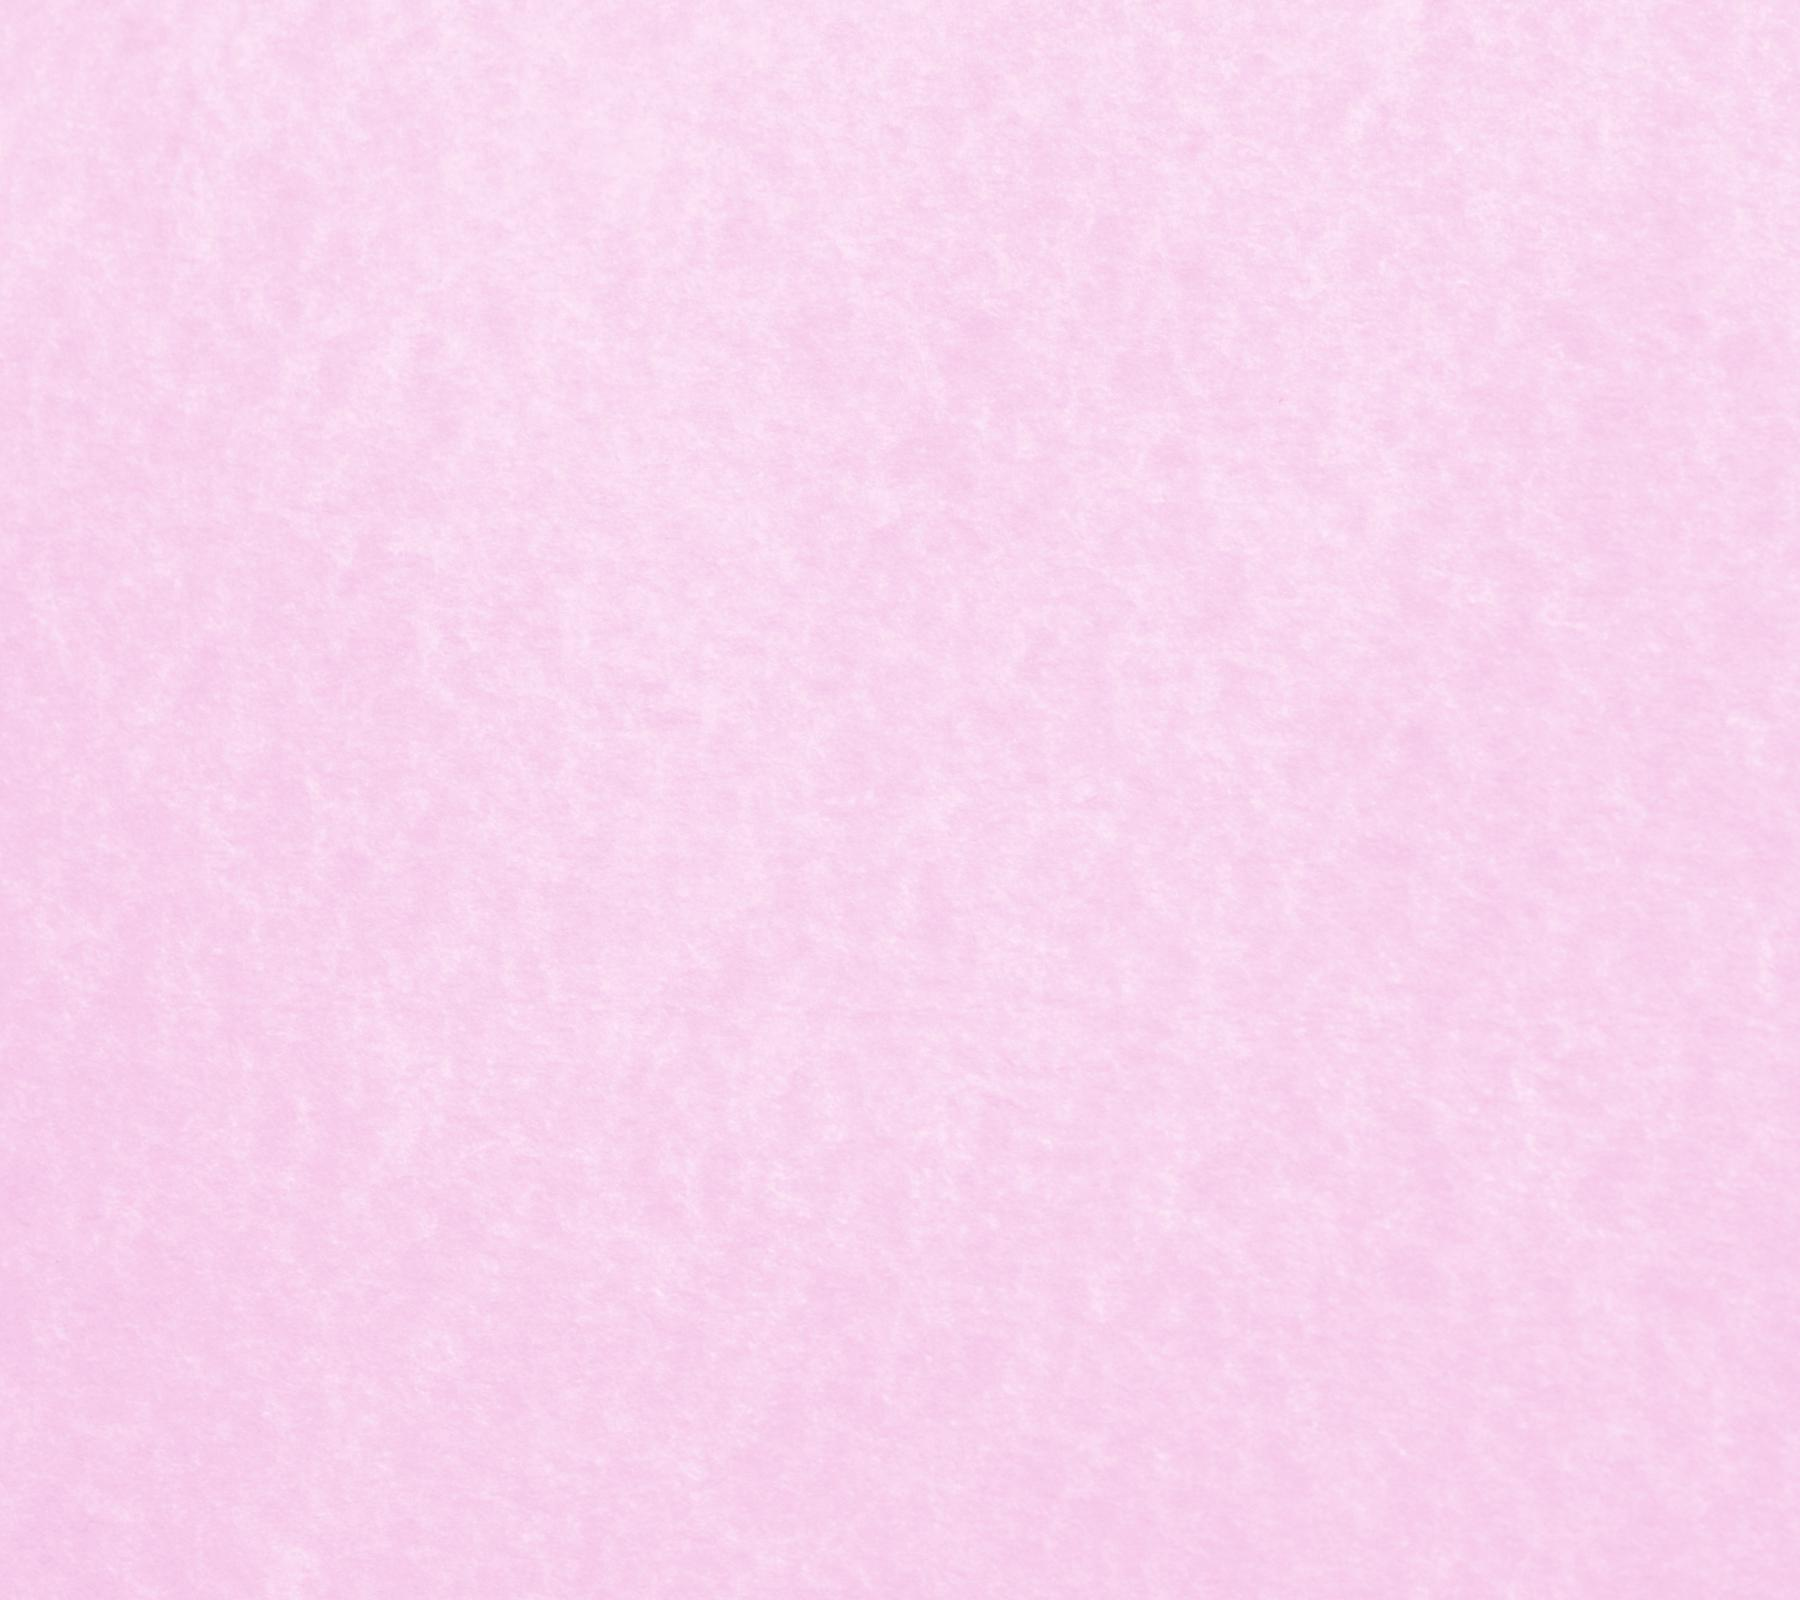 Light Pink Parchment Paper Background 1800x1600 Background Image 1800x1600